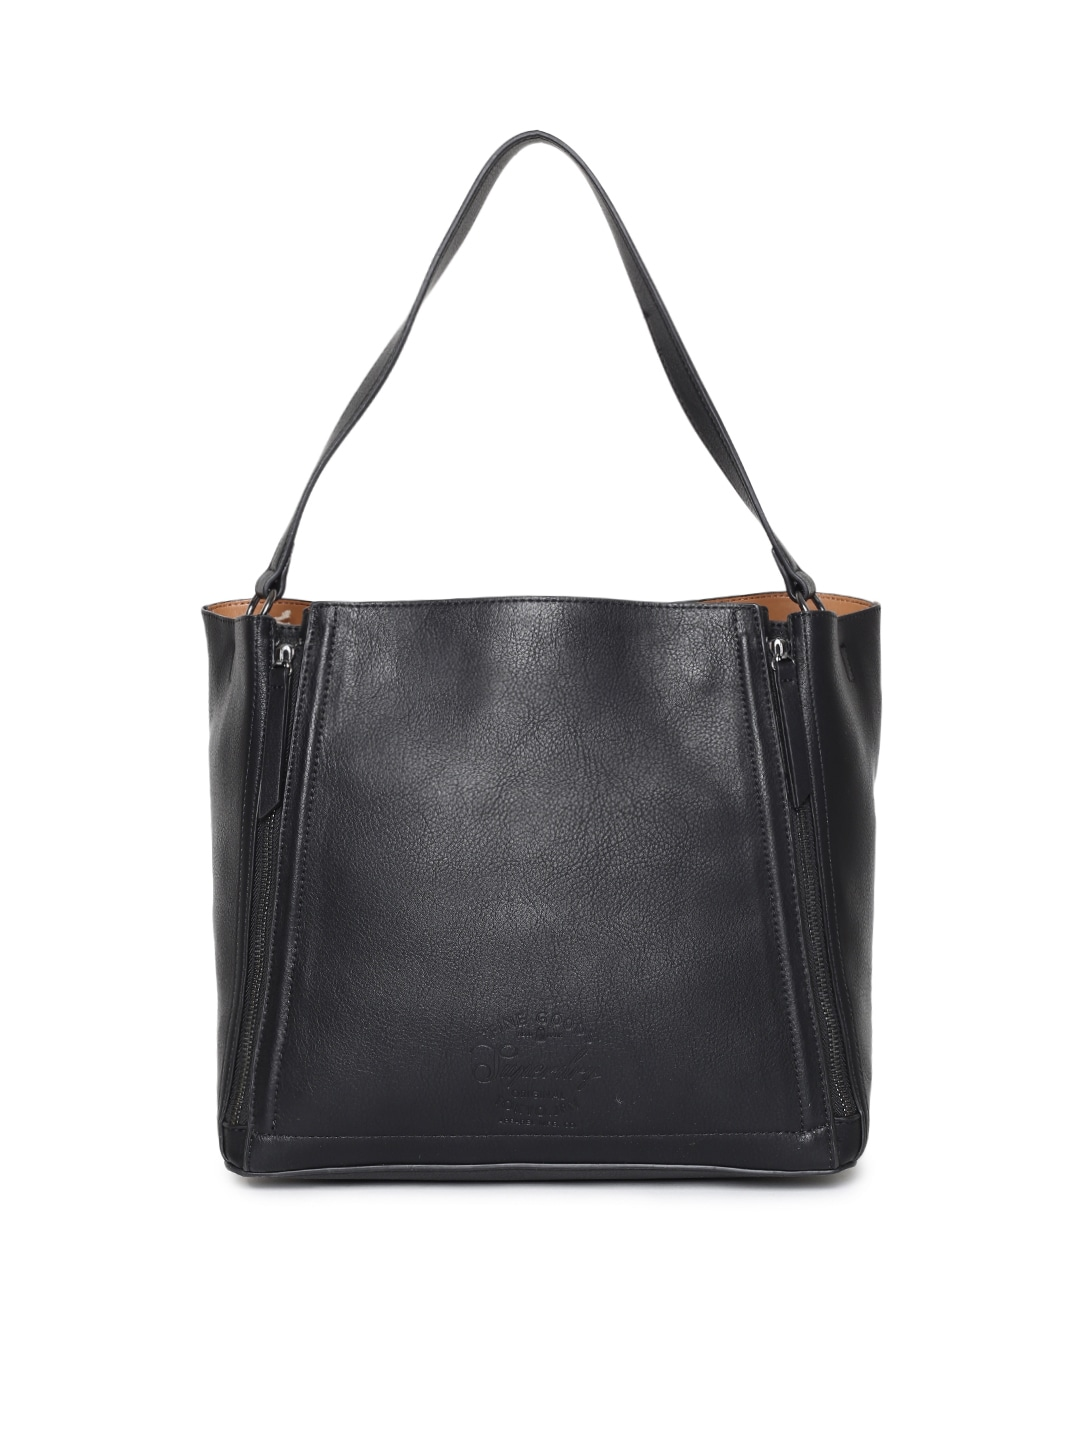 bd02a35d0c Handbags for Women - Buy Leather Handbags